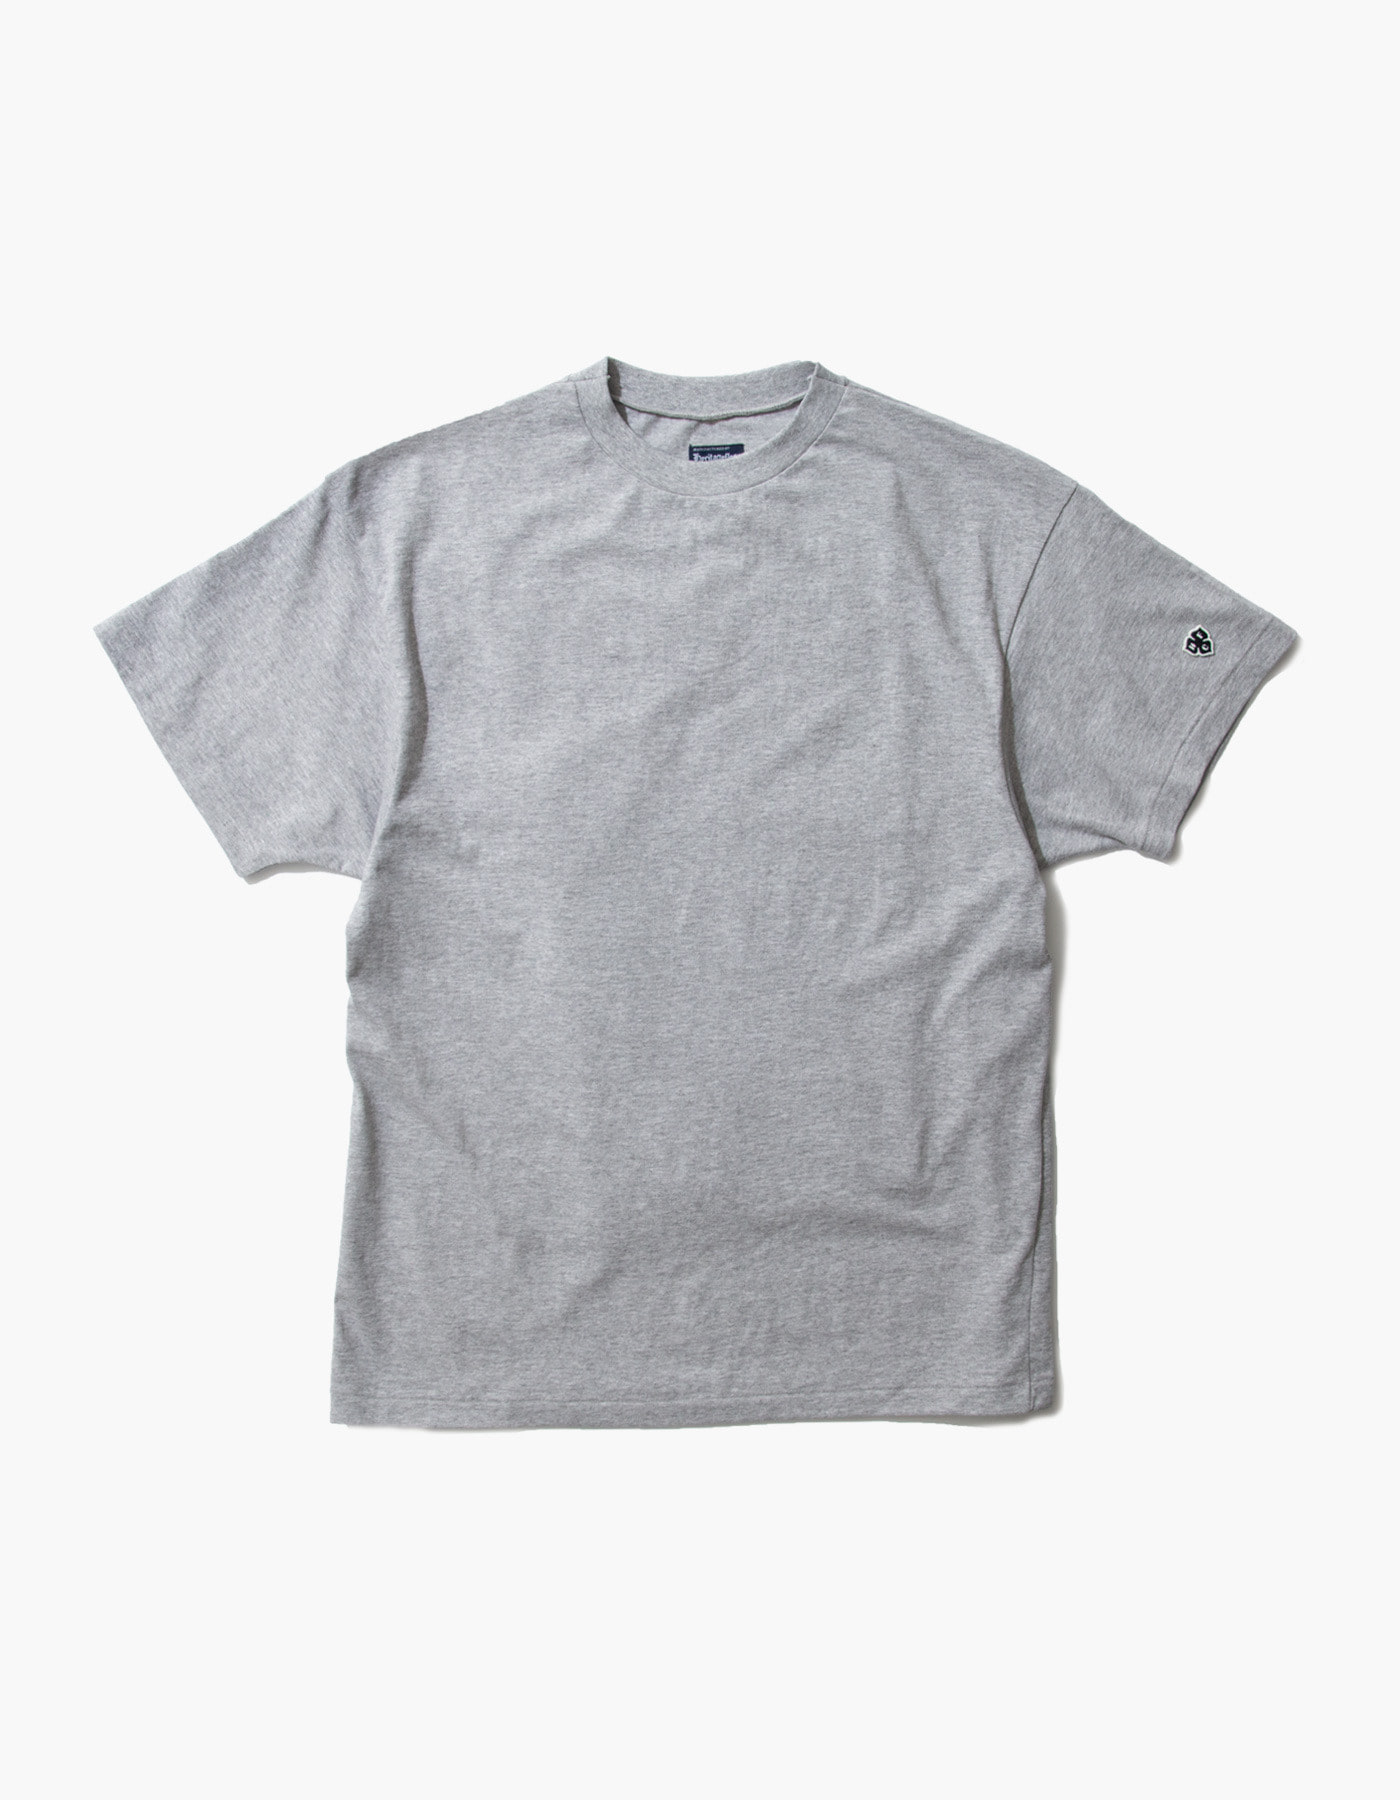 ACS COMPACT YARN T-SHIRTS / M.GREY(5%)